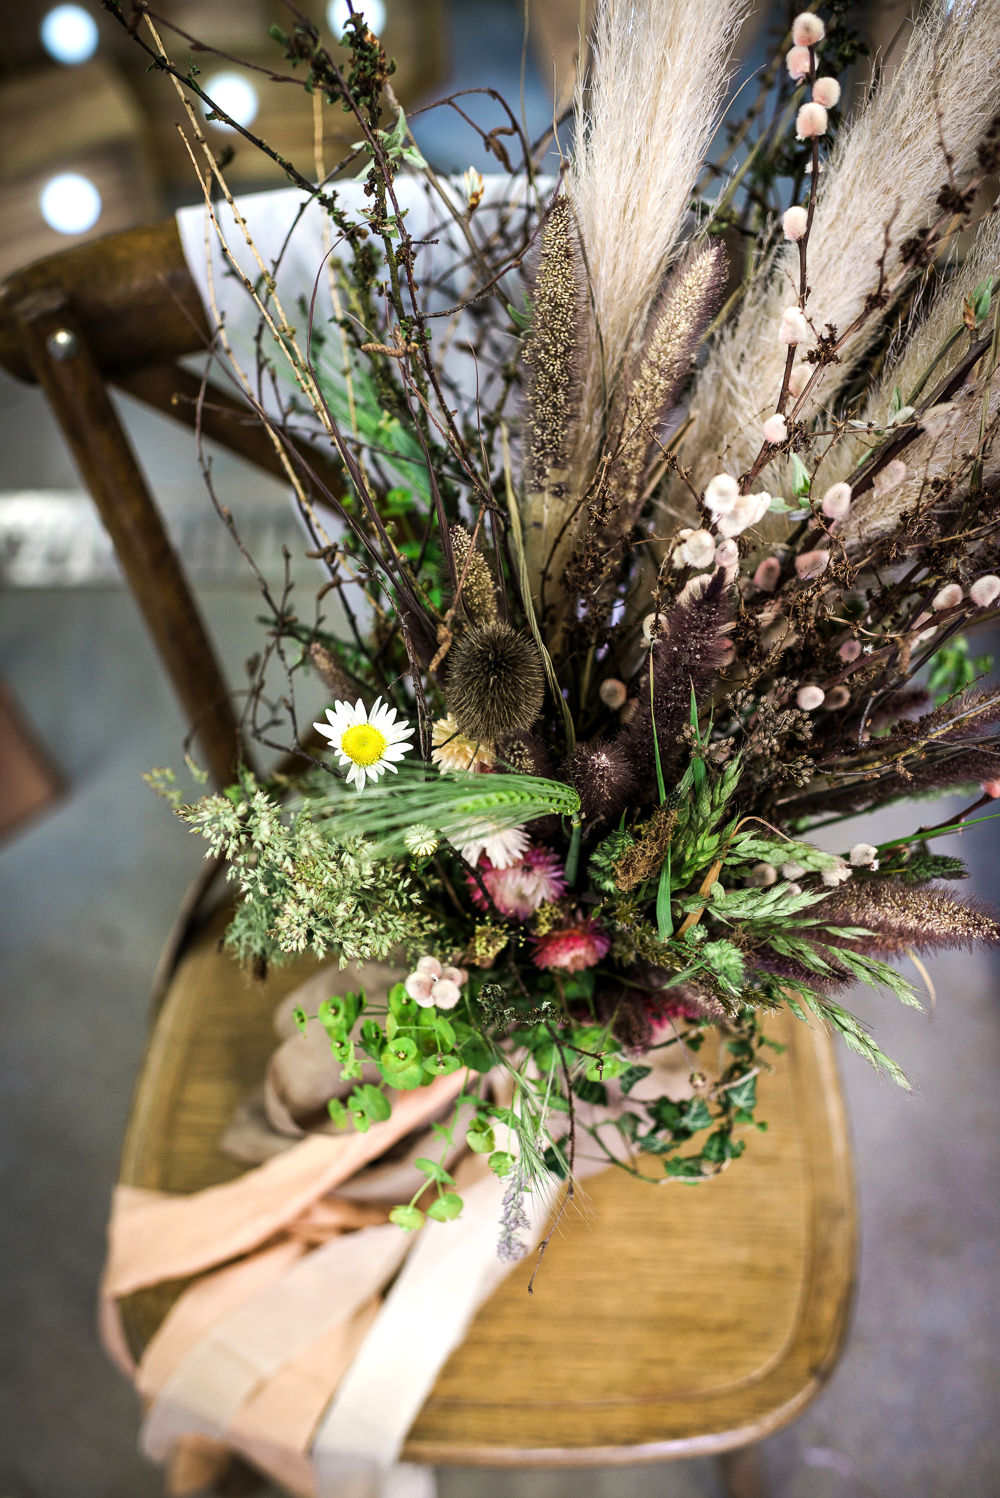 Bouquet Flowers Bride Bridal Ribbon Pampass Grass Dried Thistles Poppy Heads Seeds Indie Wedding Ideas Kat Antos-Lewis Photography